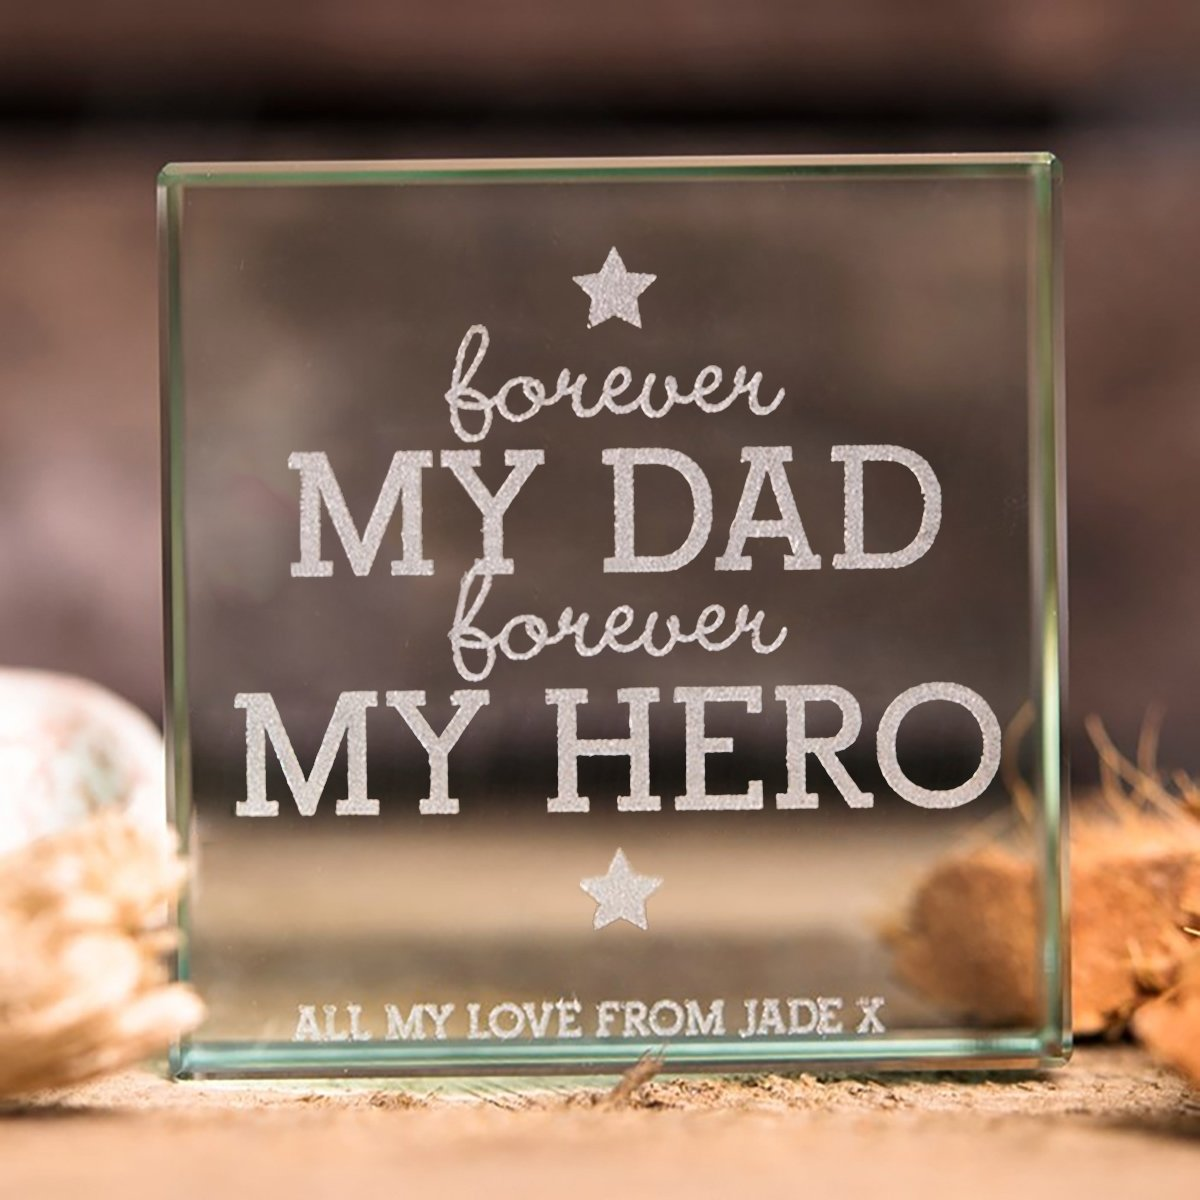 10 Stylish 70Th Birthday Ideas For Dad personalised glass token forever my dad gettingpersonal co uk 2 2020